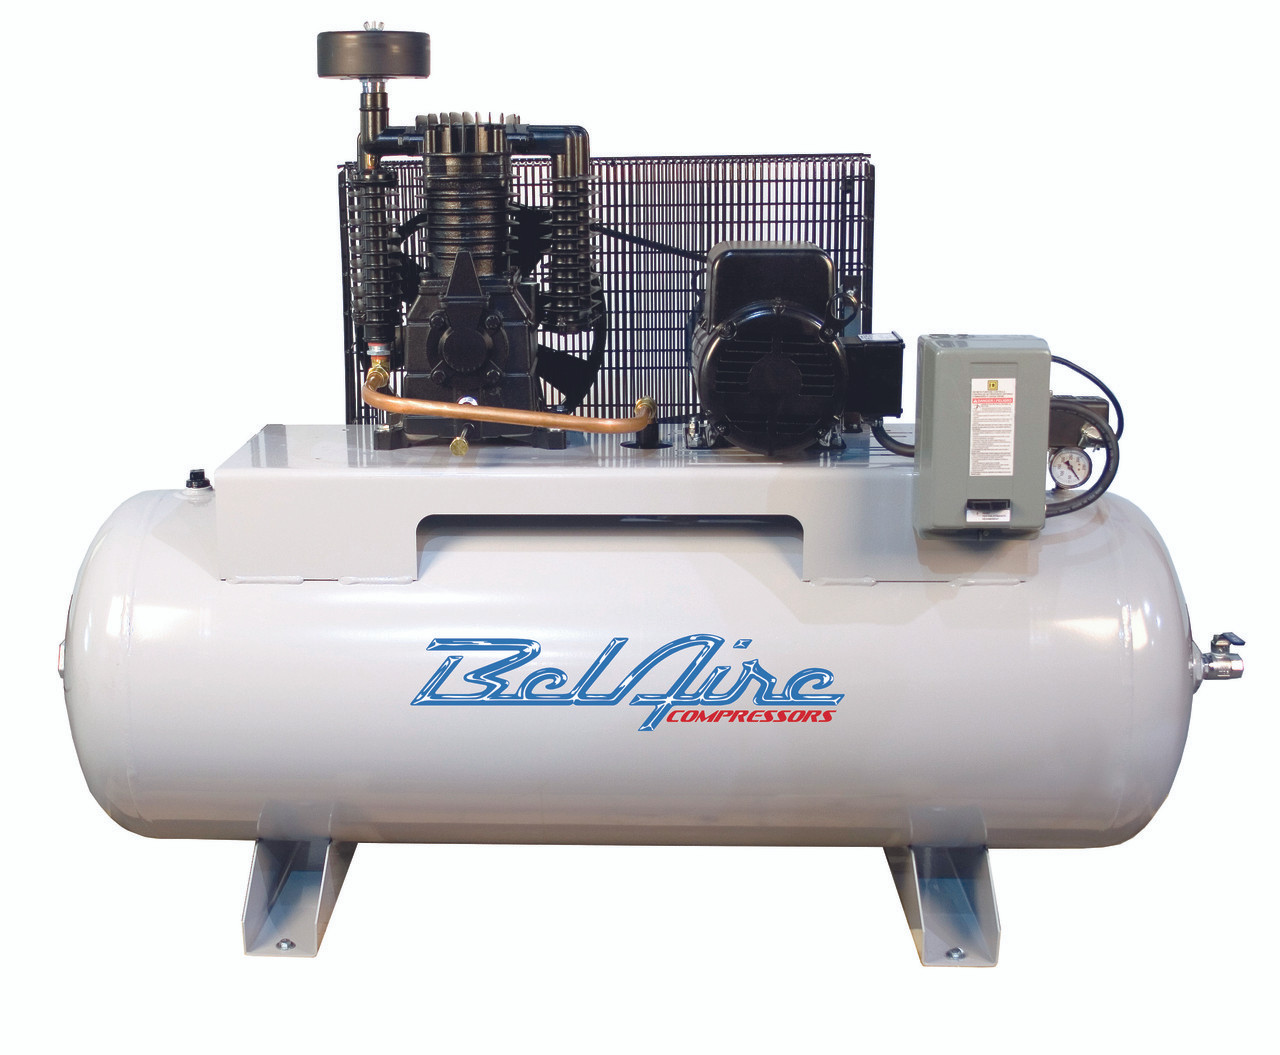 BelAire 318H 5 HP 208-230 Volt Single Phase Two Stage 80 Gallon Horizontal Air Compressor